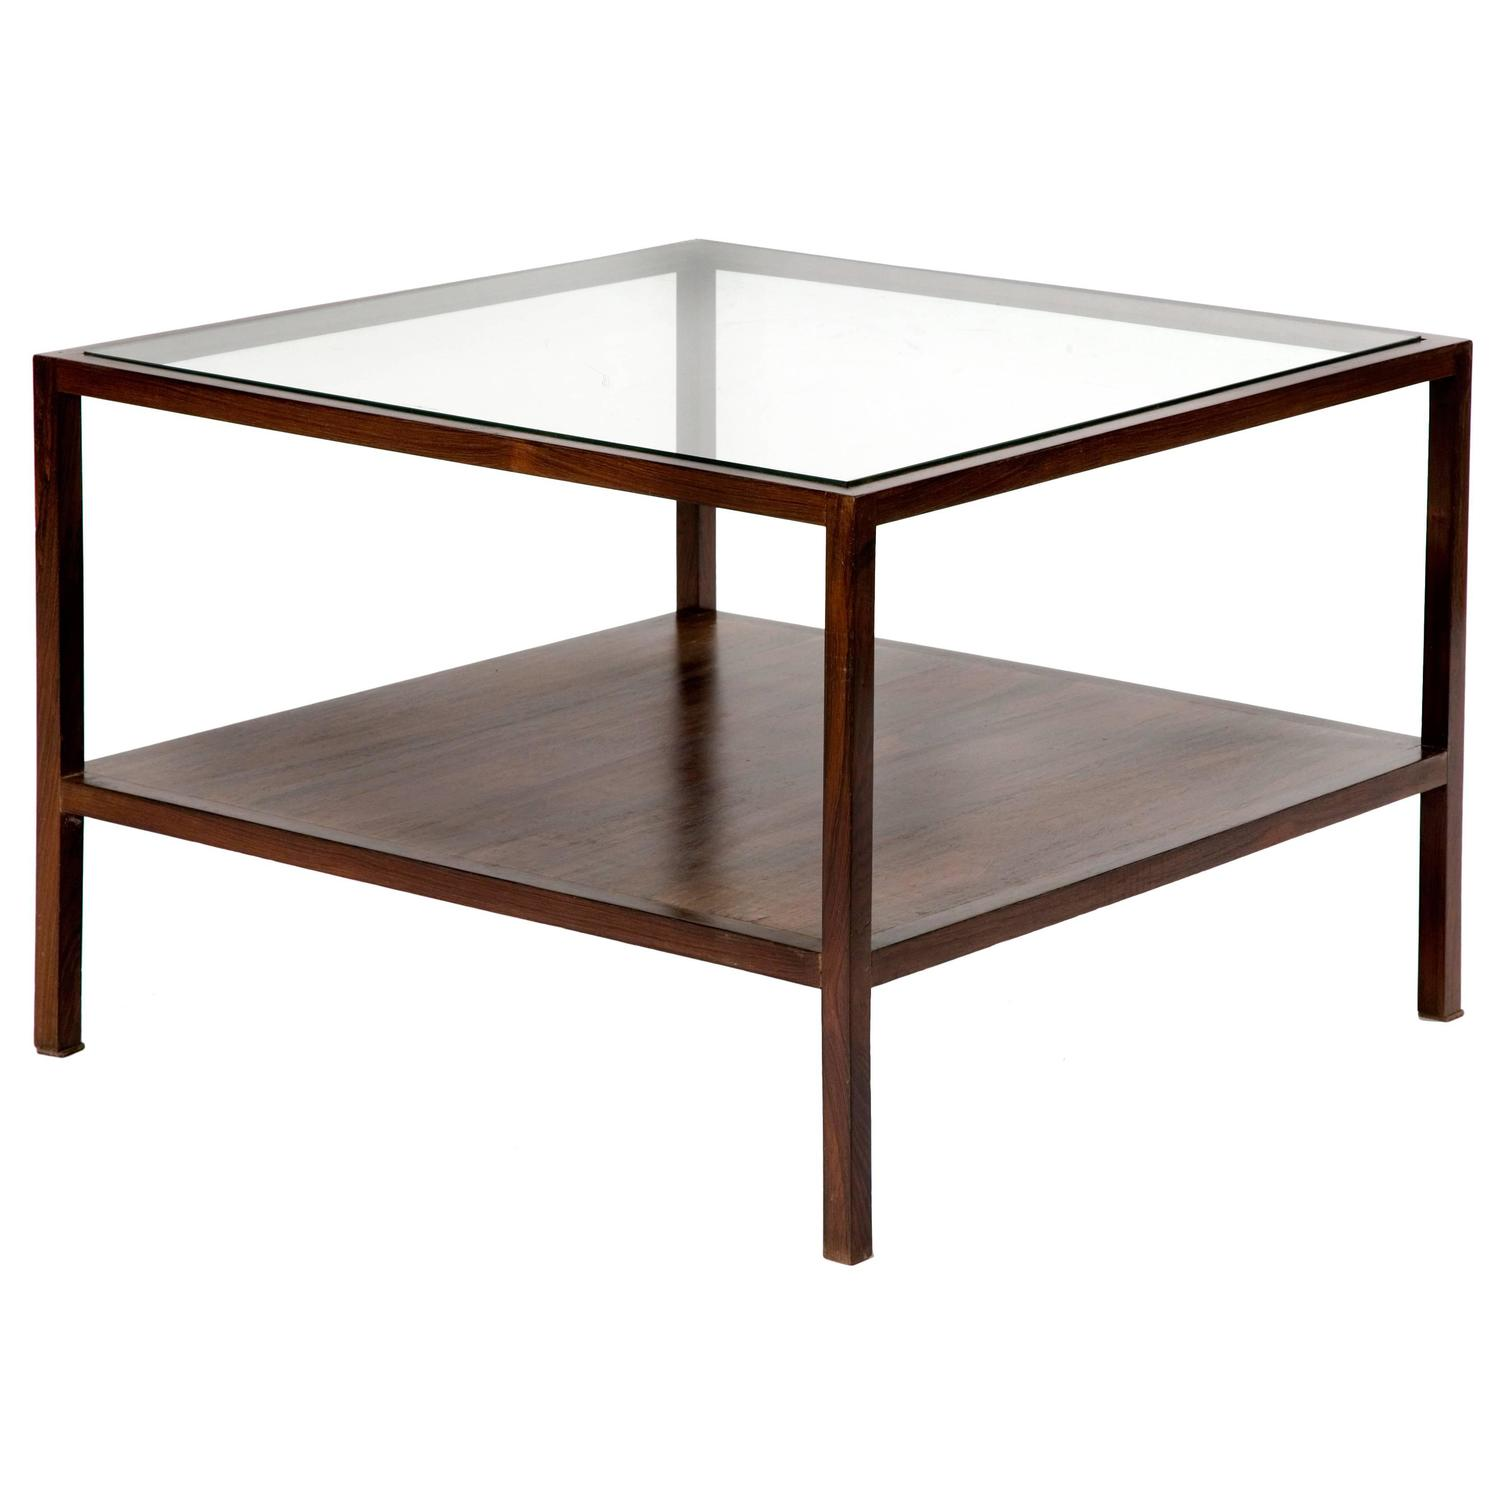 Square Coffee Table In Jacaranda With Glass Top By Joaquim